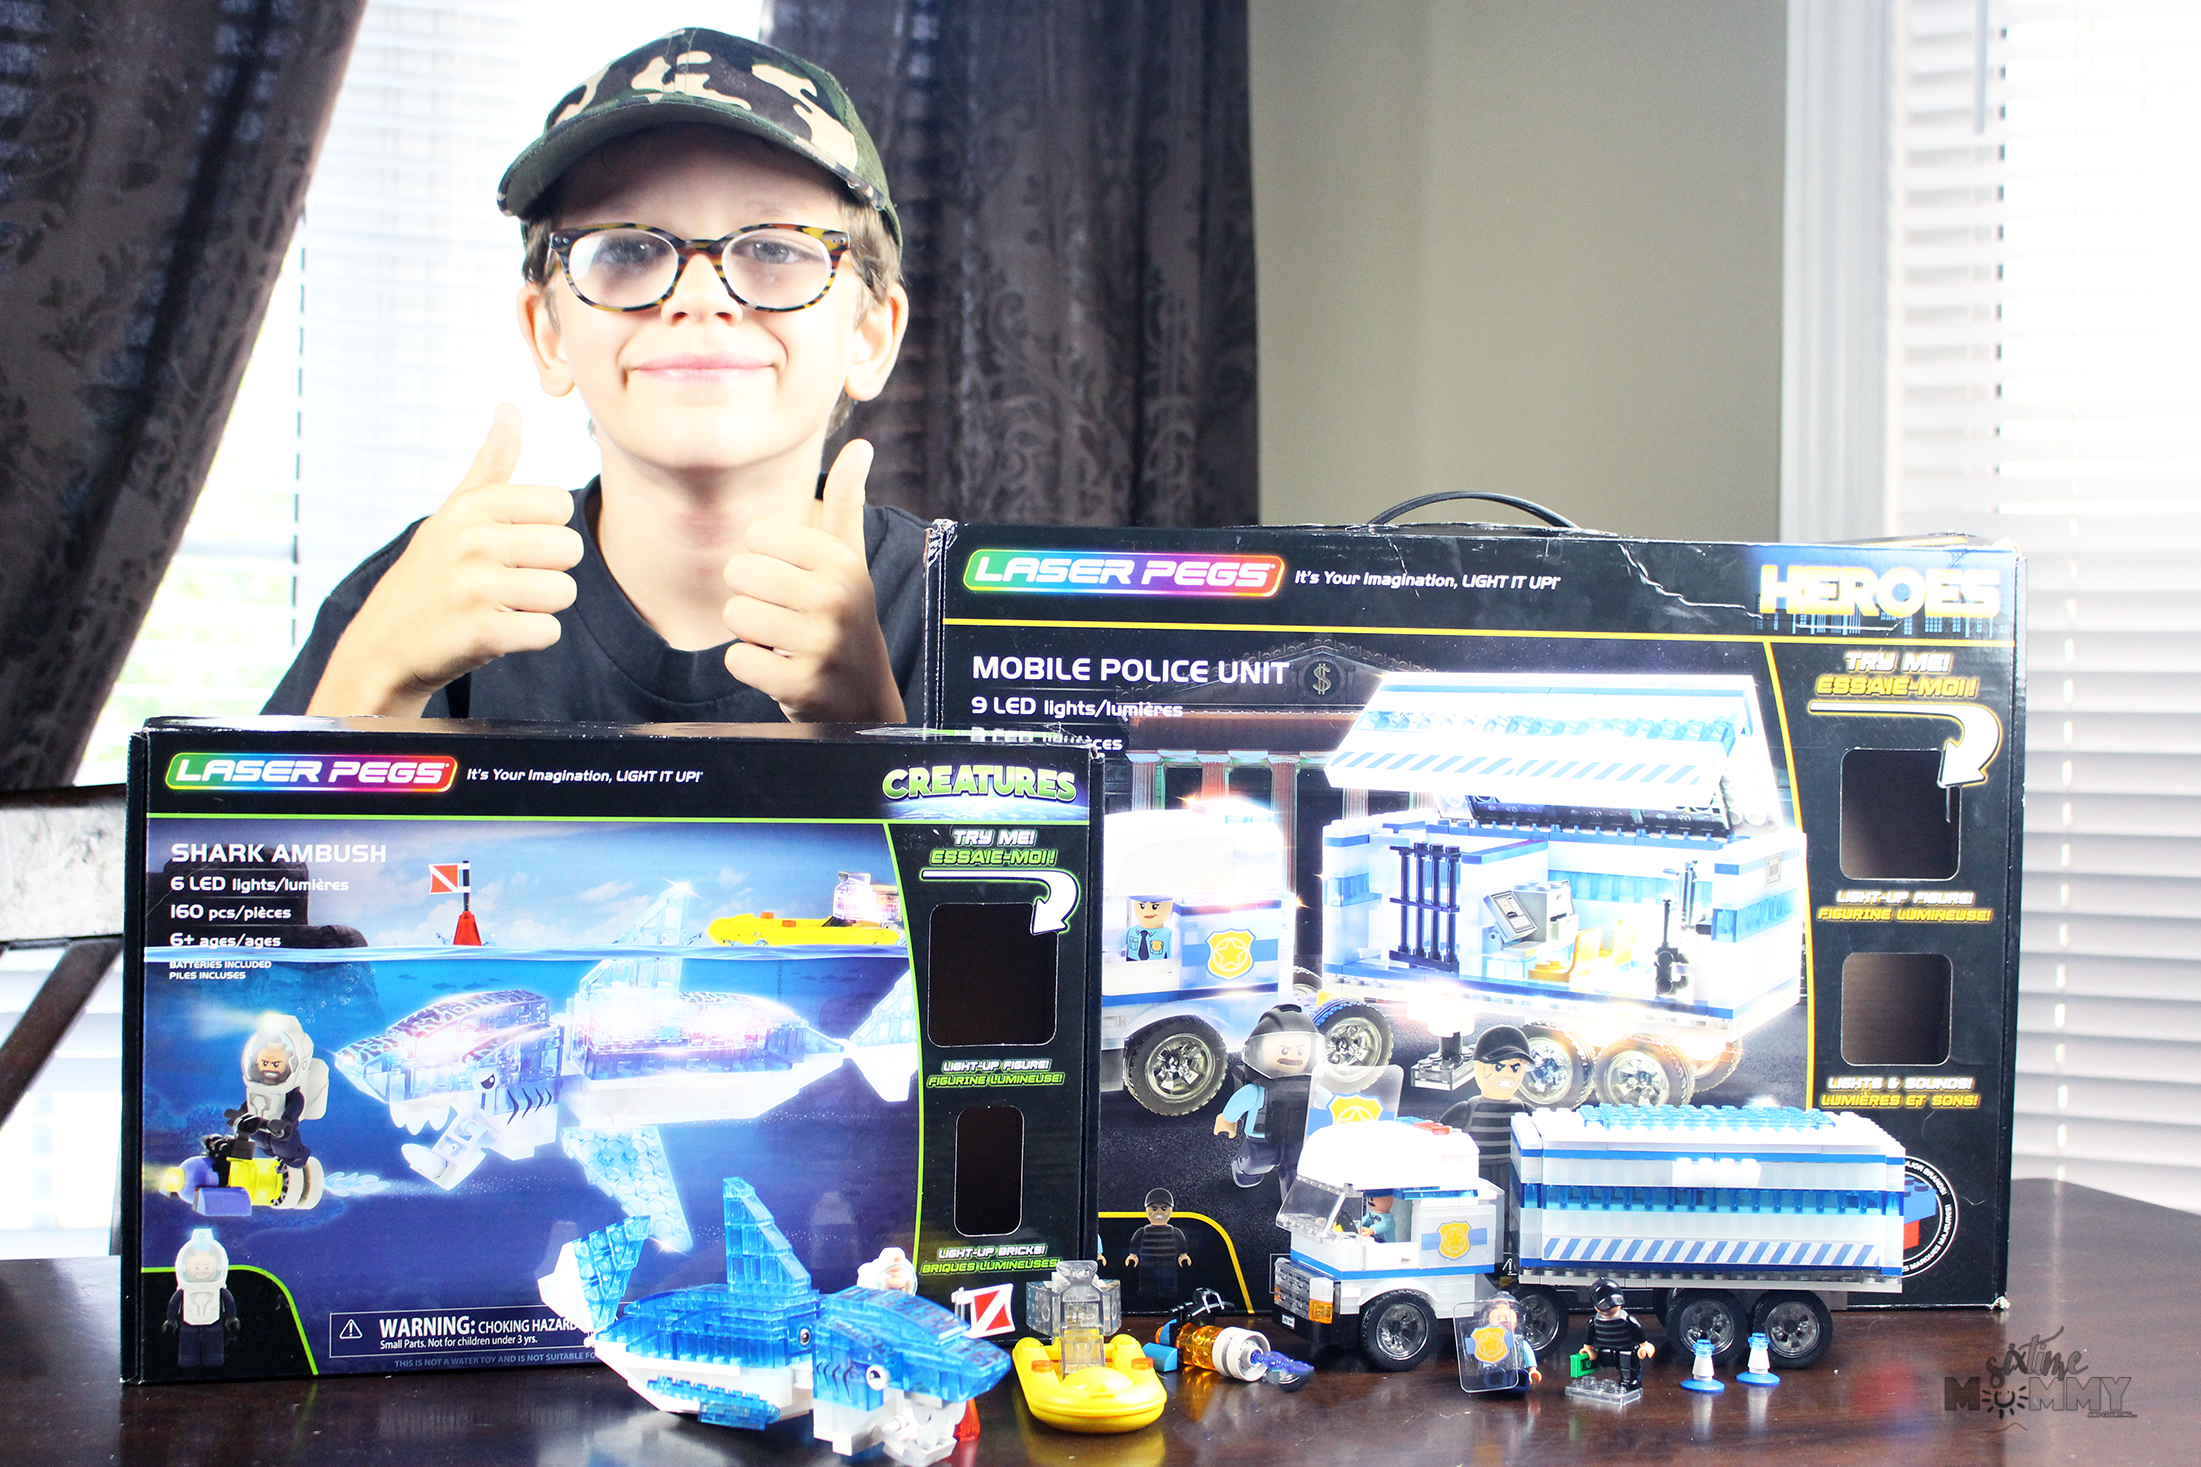 Cool Toys For Ages 11 And Up : Laser pegs unique stem toys to enhance learning for boy age to